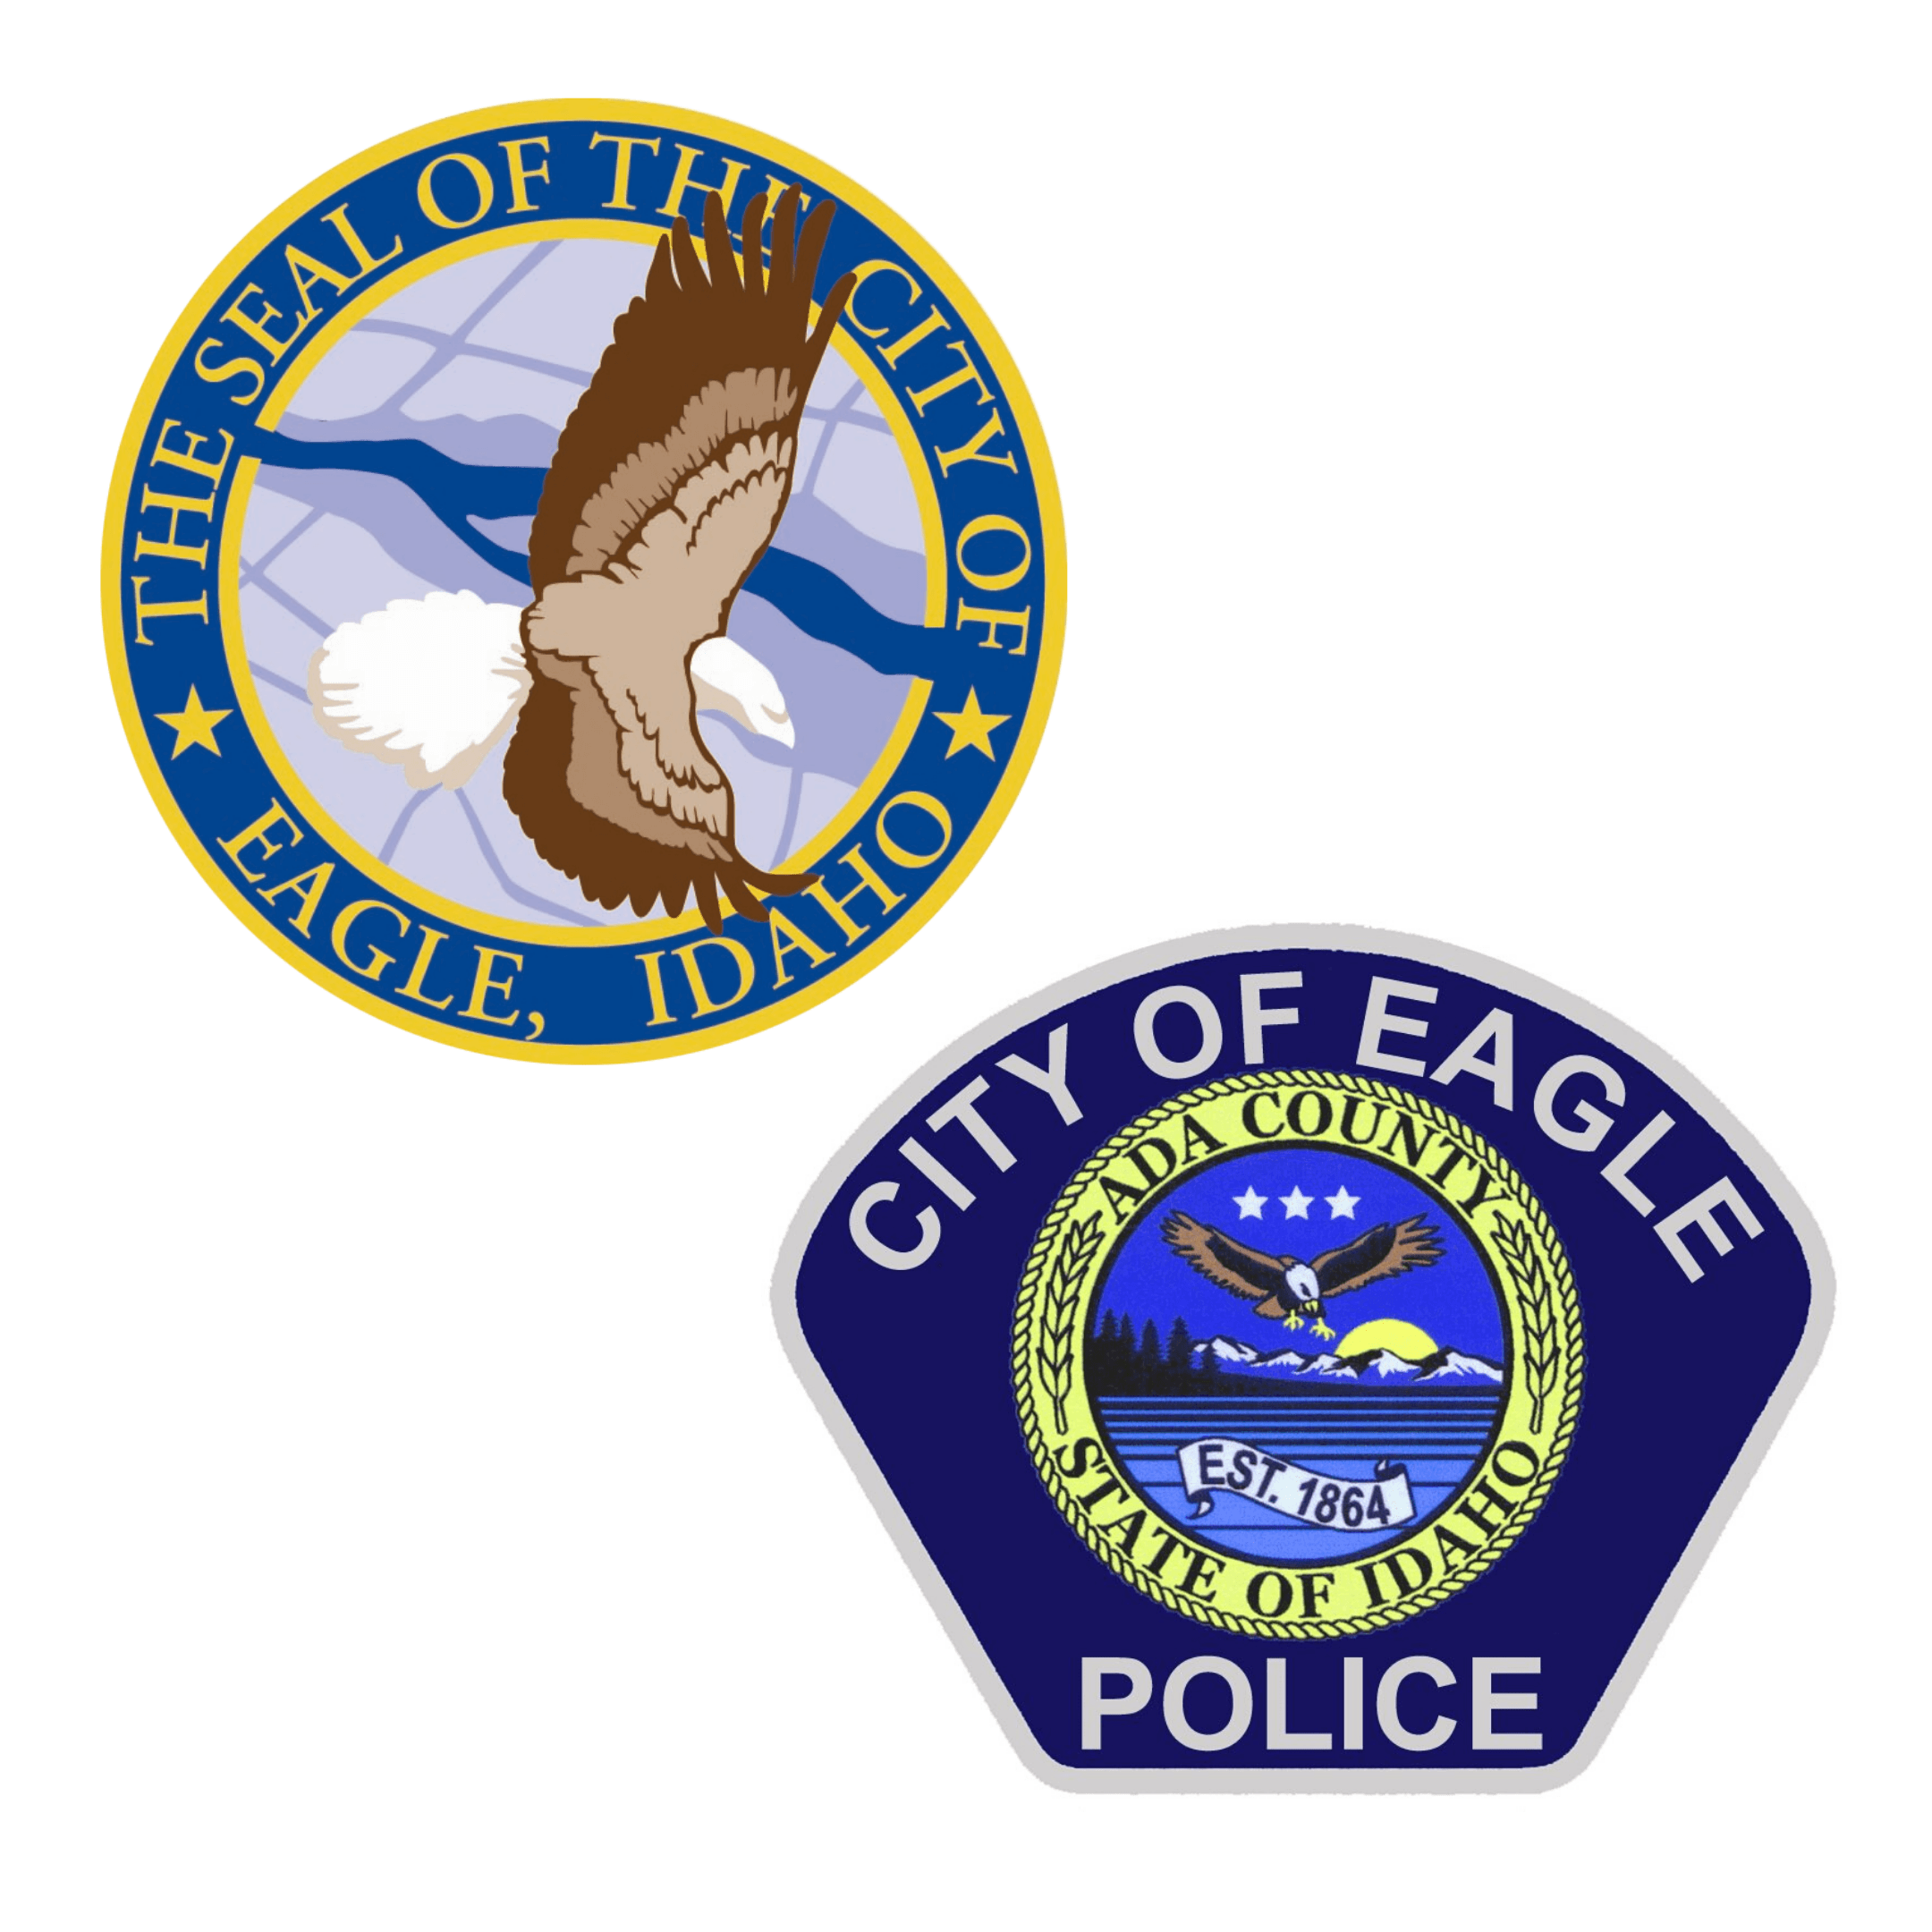 City of Eagle and Eagle Police Seals